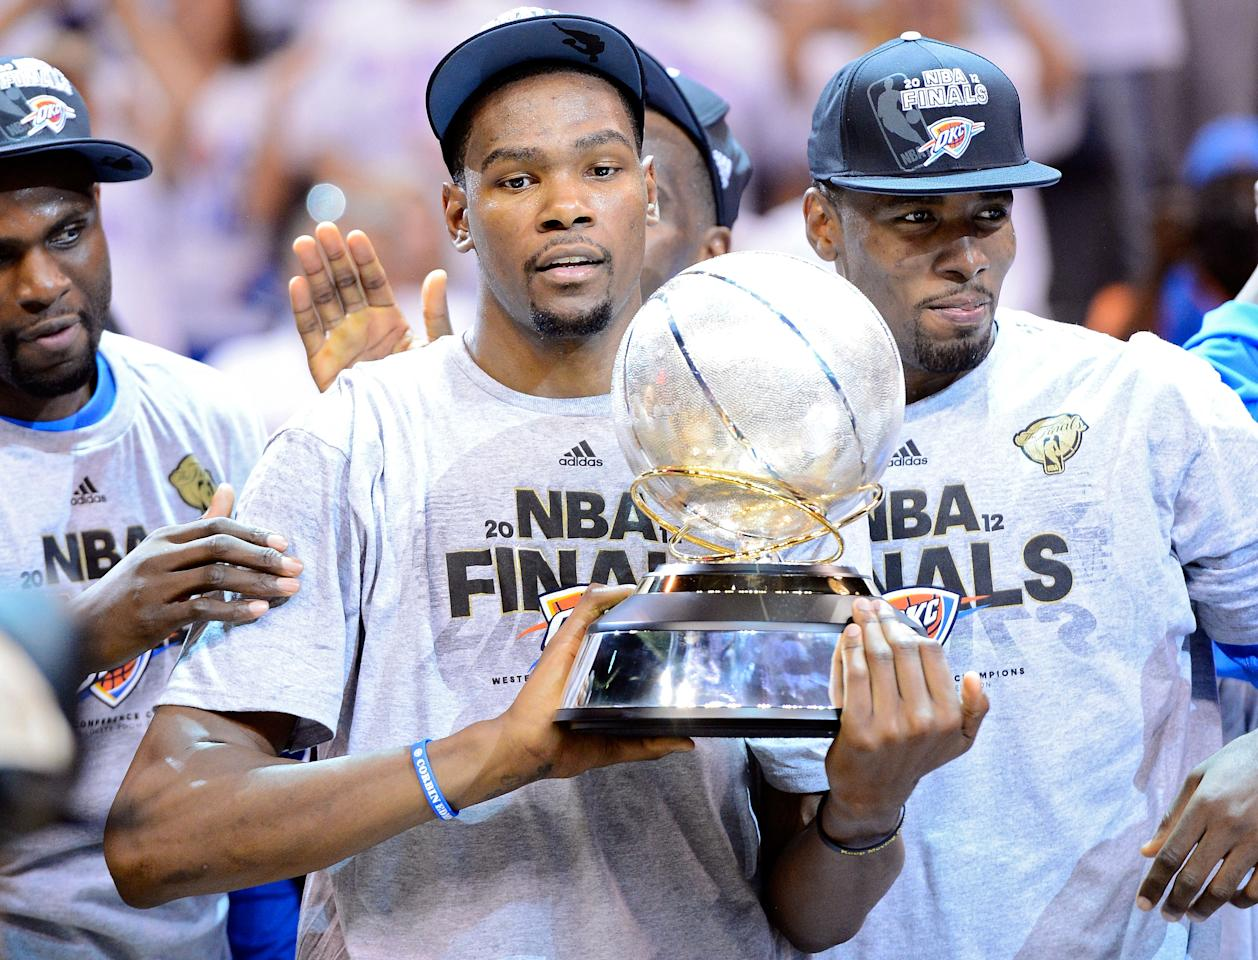 OKLAHOMA CITY, OK - JUNE 06:  Kevin Durant #35 of the Oklahoma City Thunder celebrates with the trophy after defeating the San Antonio Spurs to win the Western Conference Finals of the 2012 NBA Playoffs at Chesapeake Energy Arena on June 6, 2012 in Oklahoma City, Oklahoma. NOTE TO USER: User expressly acknowledges and agrees that, by downloading and or using this photograph, User is consenting to the terms and conditions of the Getty Images License Agreement.  (Photo by Michael Heiman/Getty Images)